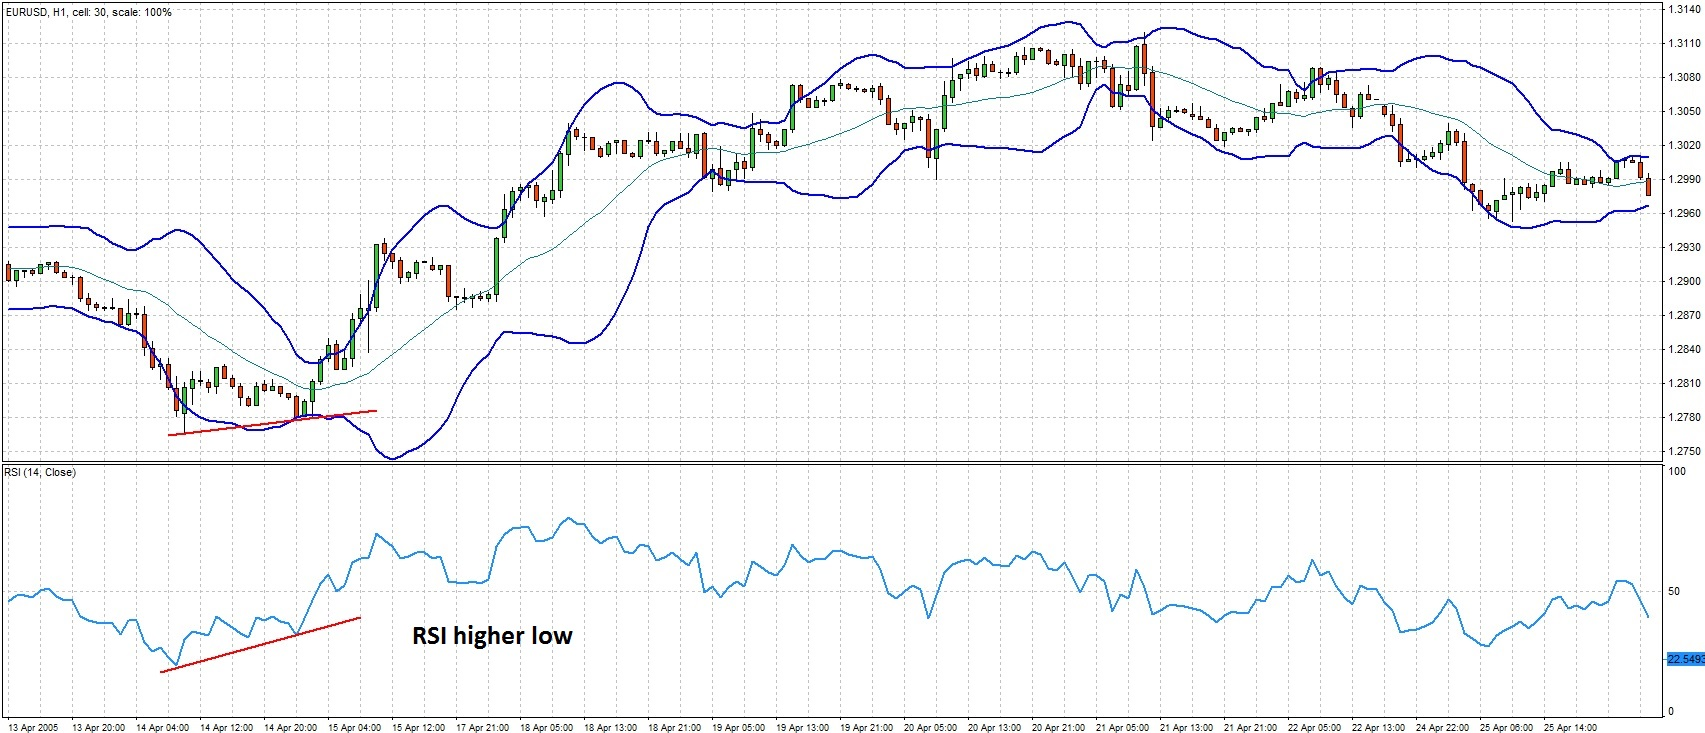 Bollinger Bands reversal with RSI